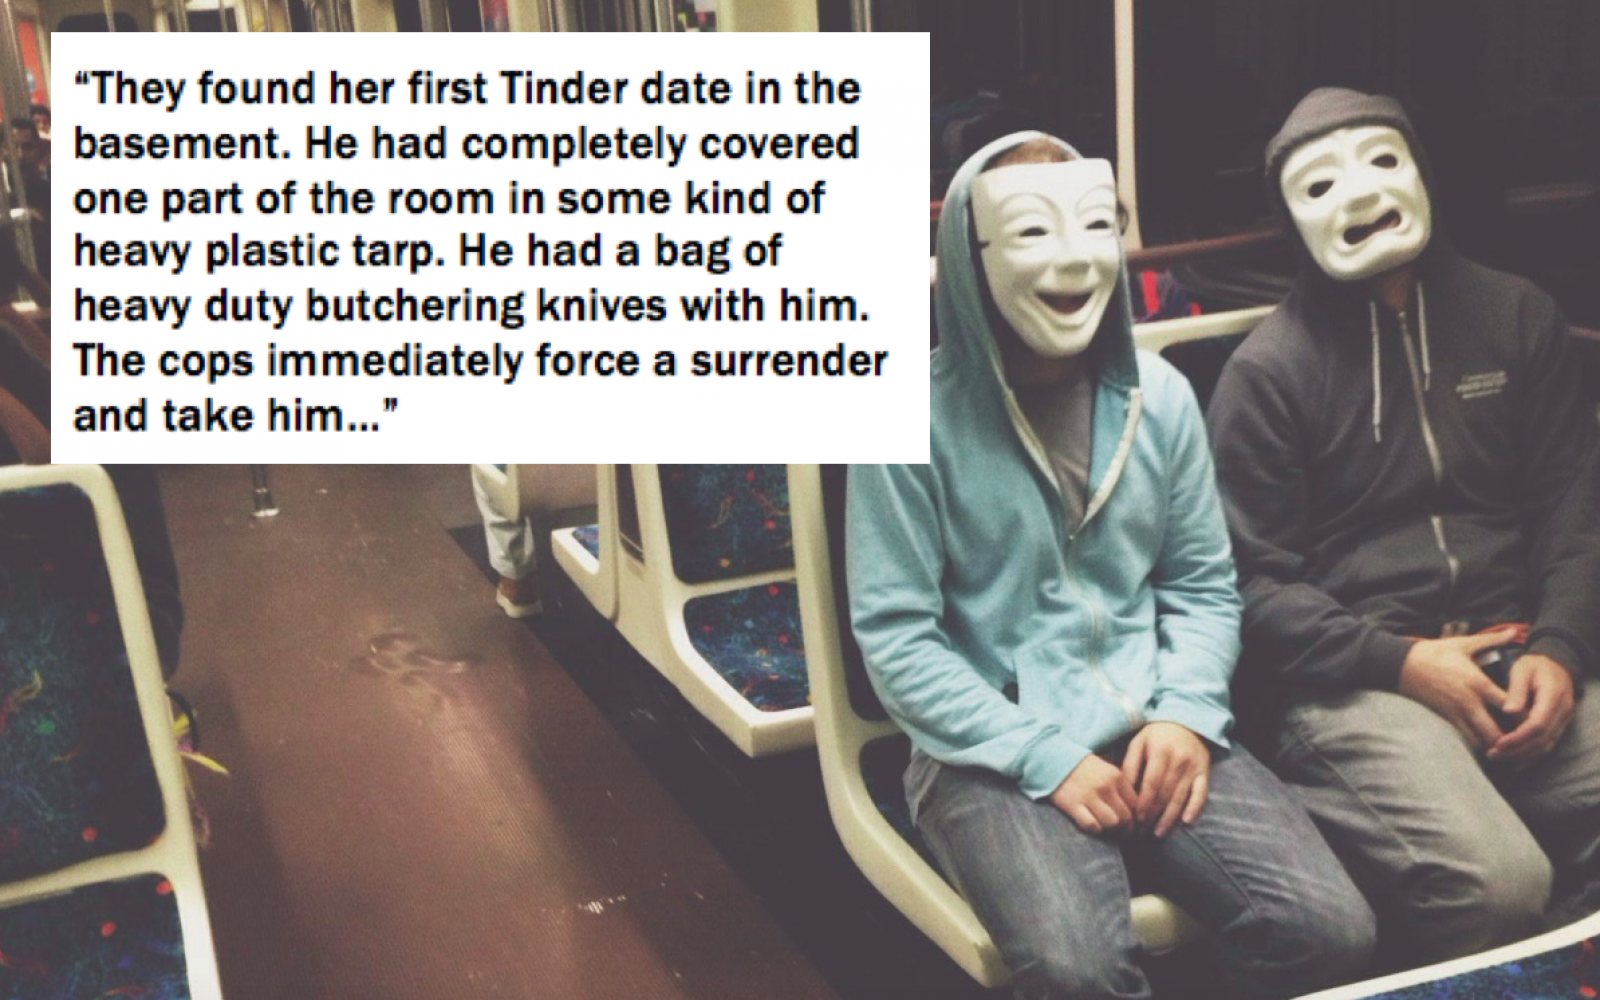 16 Insanely Creepy True Stories That Will Keep You Glued To Your Screen  Against Your Will